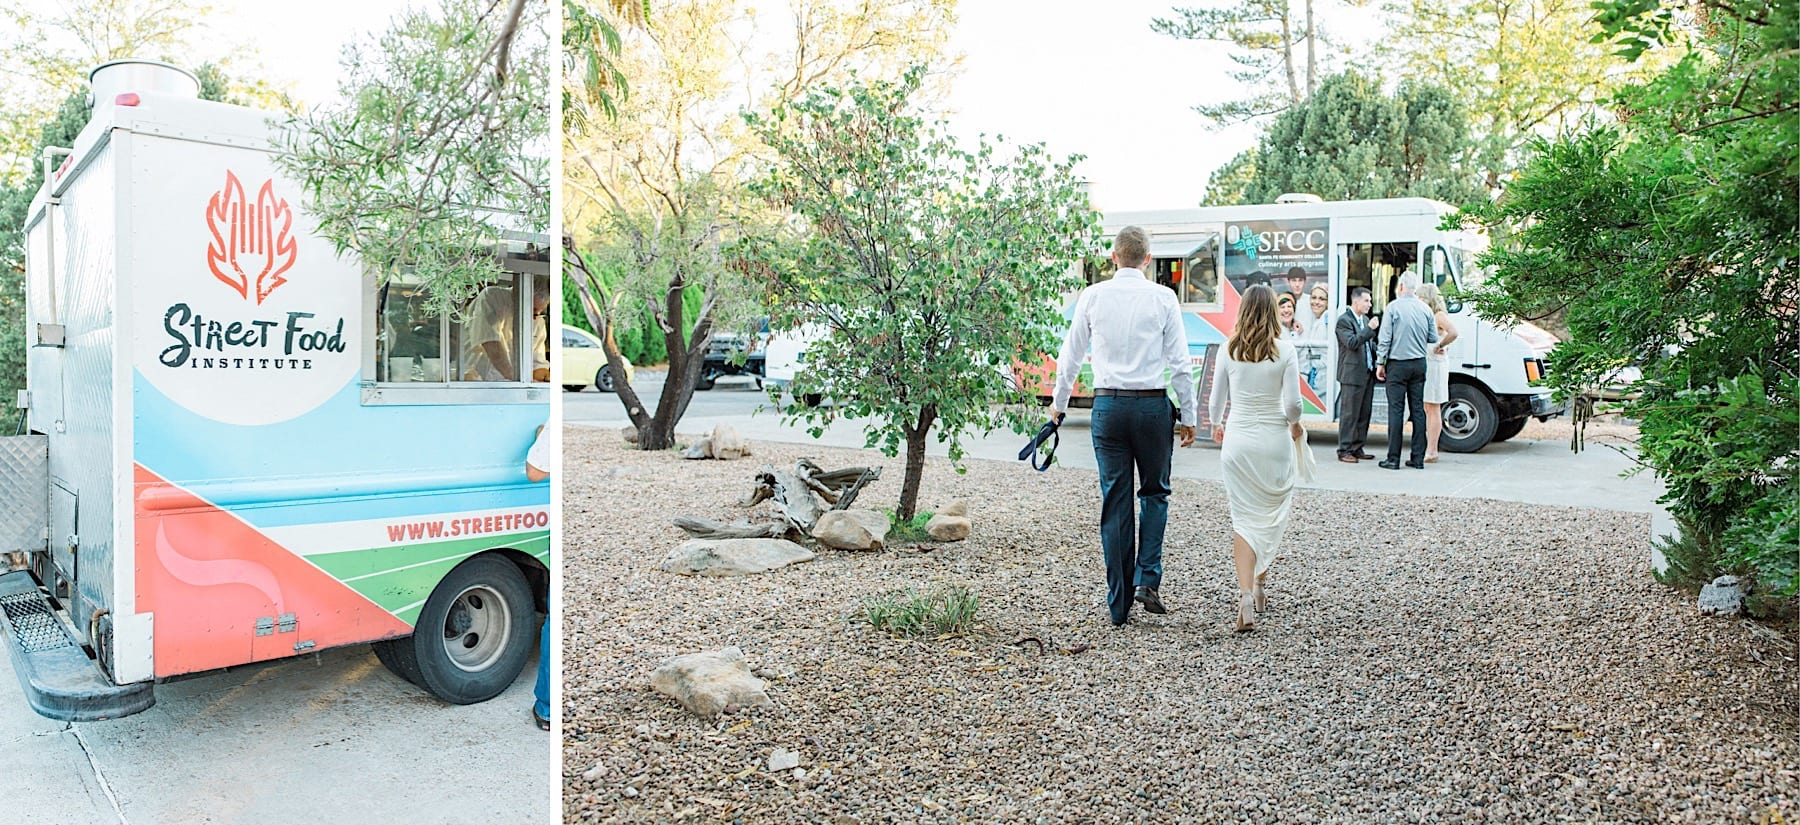 Backyard wedding in Albuquerque, Backyard Wedding Ideas, Wedding ideas in New Mexico, Unique Backyard wedding ideas, Taco Truck Albuquerque, New Mexico Wedding photographer, wedding photographer in Santa Fe, Wedding photographer in Santa Barbara, Santa Barbara Wedding Photographer, Backyard wedding inspiration, Backyard wedding in the Southwest, Backyard wedding ideas in Phoenix, Backyard wedding ideas in Santa Fe, Bhldn wedding inspiration, Untraditional wedding ideas